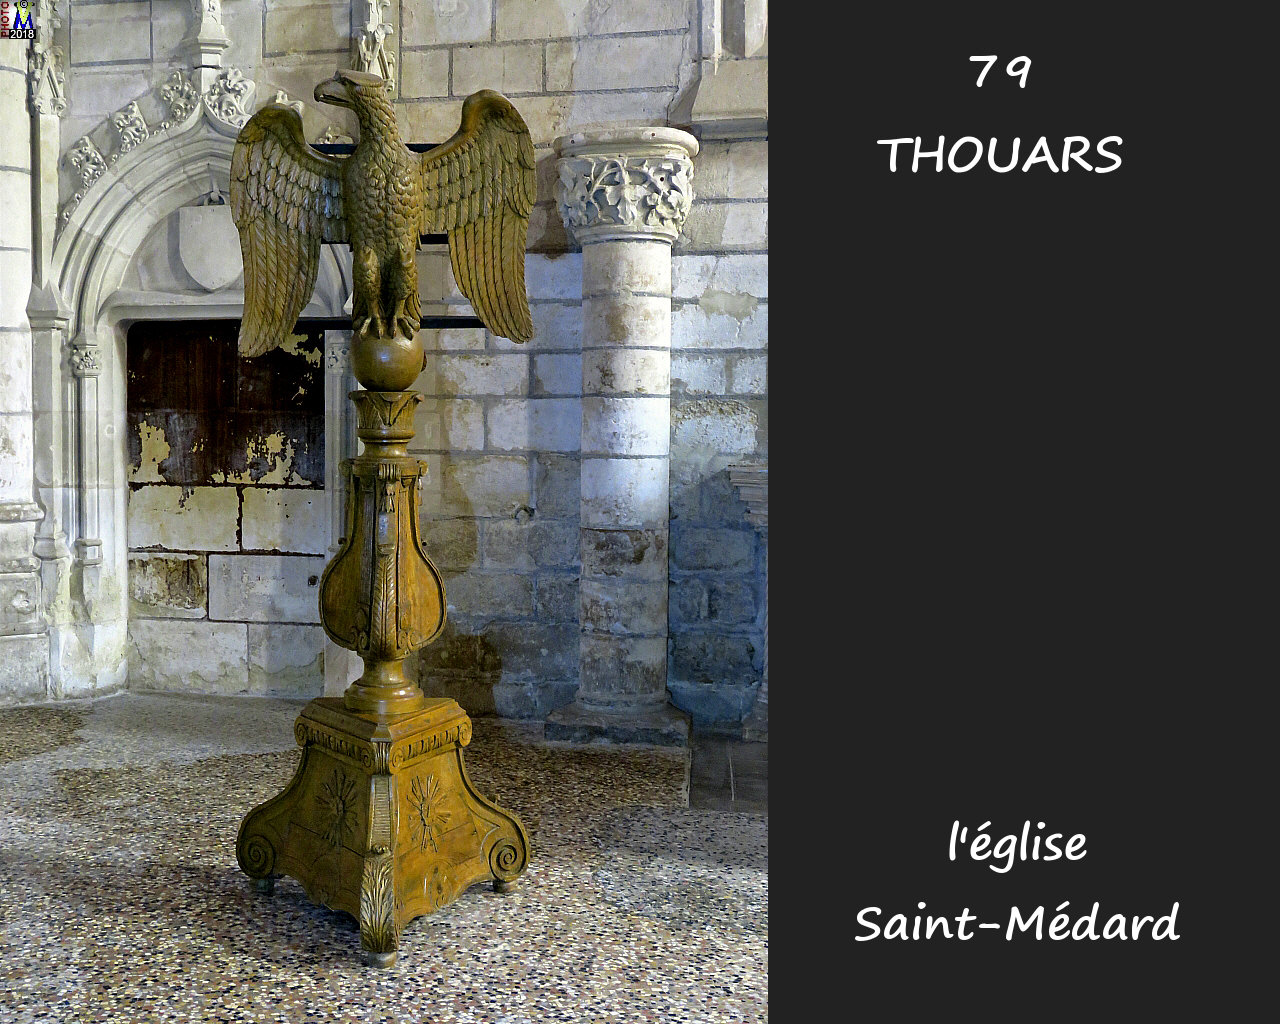 79THOUARS_egliseSM_1156.jpg